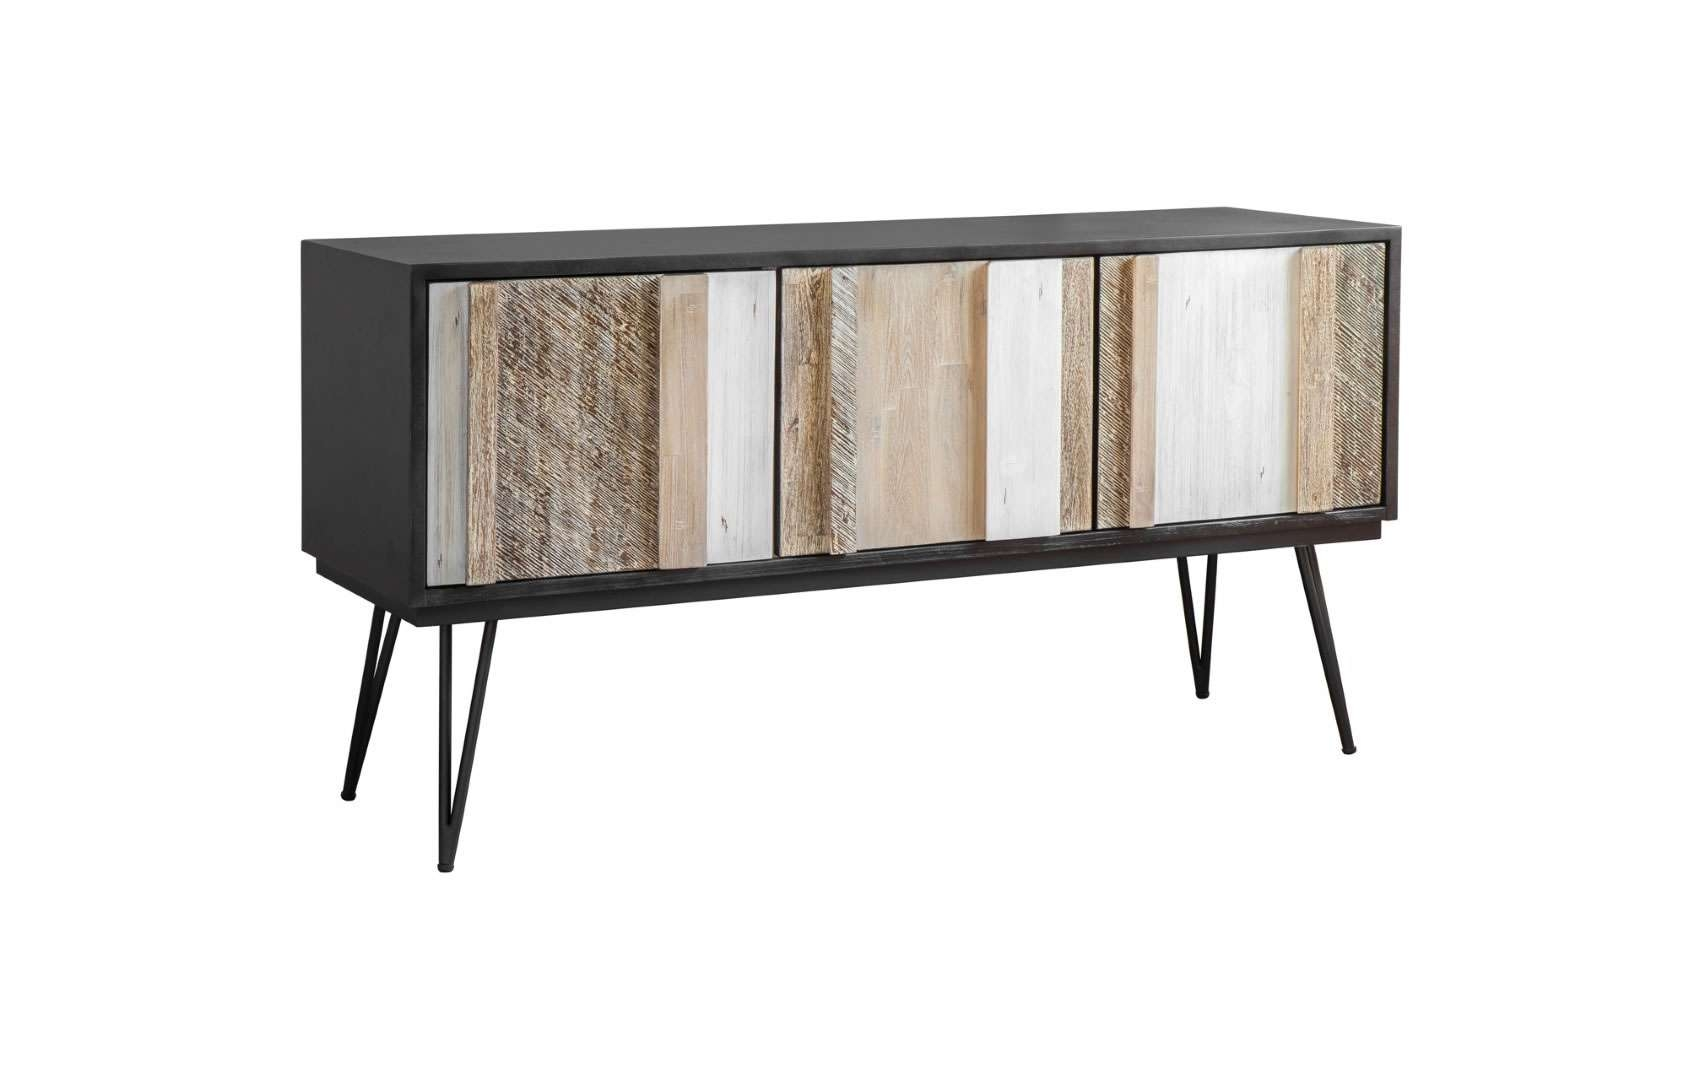 Eclectic – Lh Imports Noir Havana Sideboard – Lh Nha003B | Modern With Eclectic Sideboards (View 2 of 20)